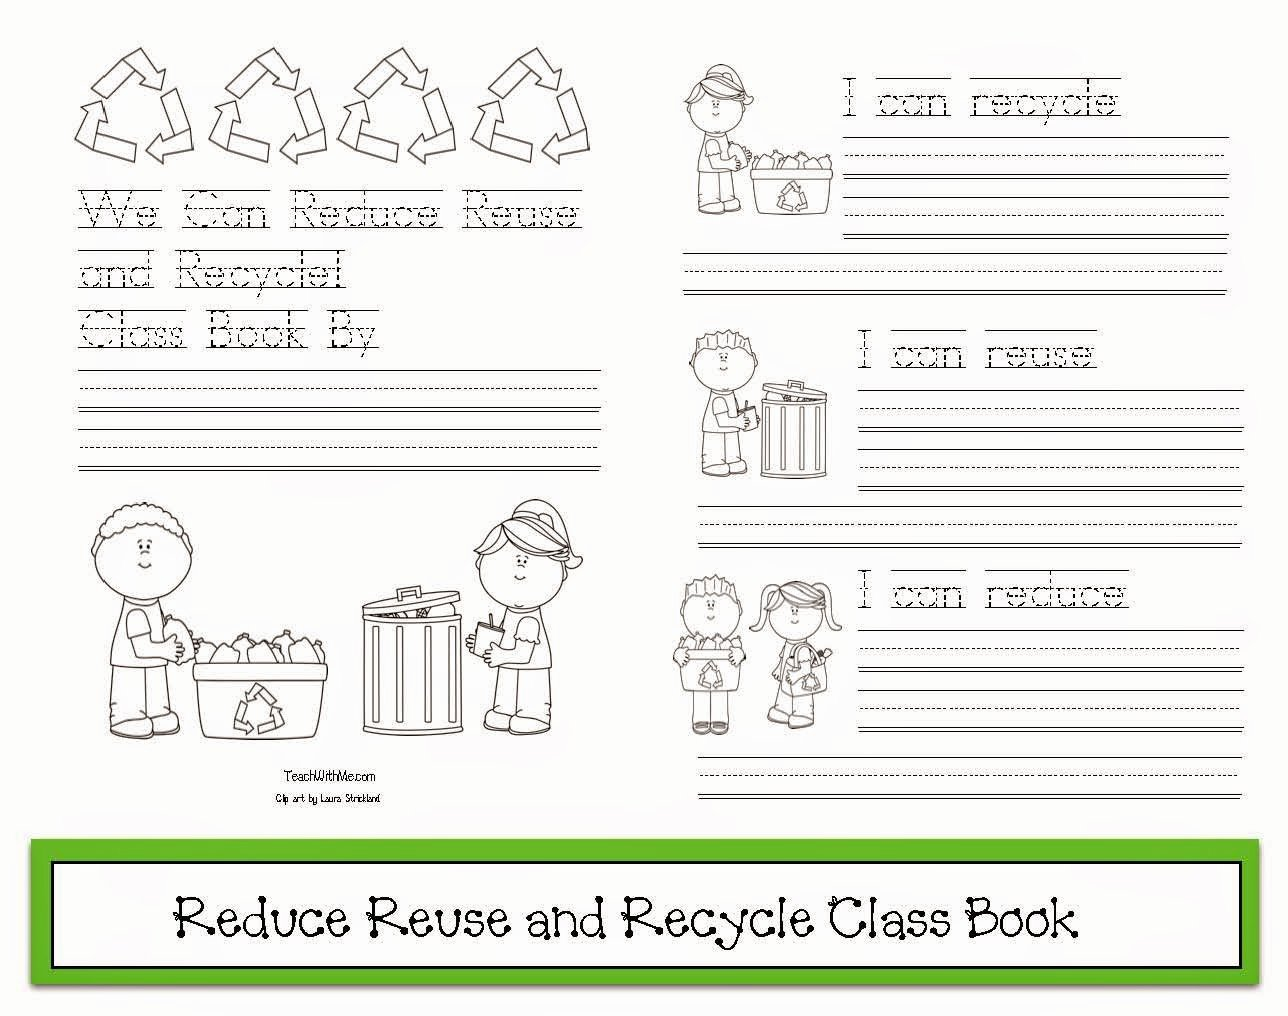 Reduce Reuse Recycle Worksheet Unique 55 Reduce Reuse Recycle Worksheets Recycling Worksheet 1